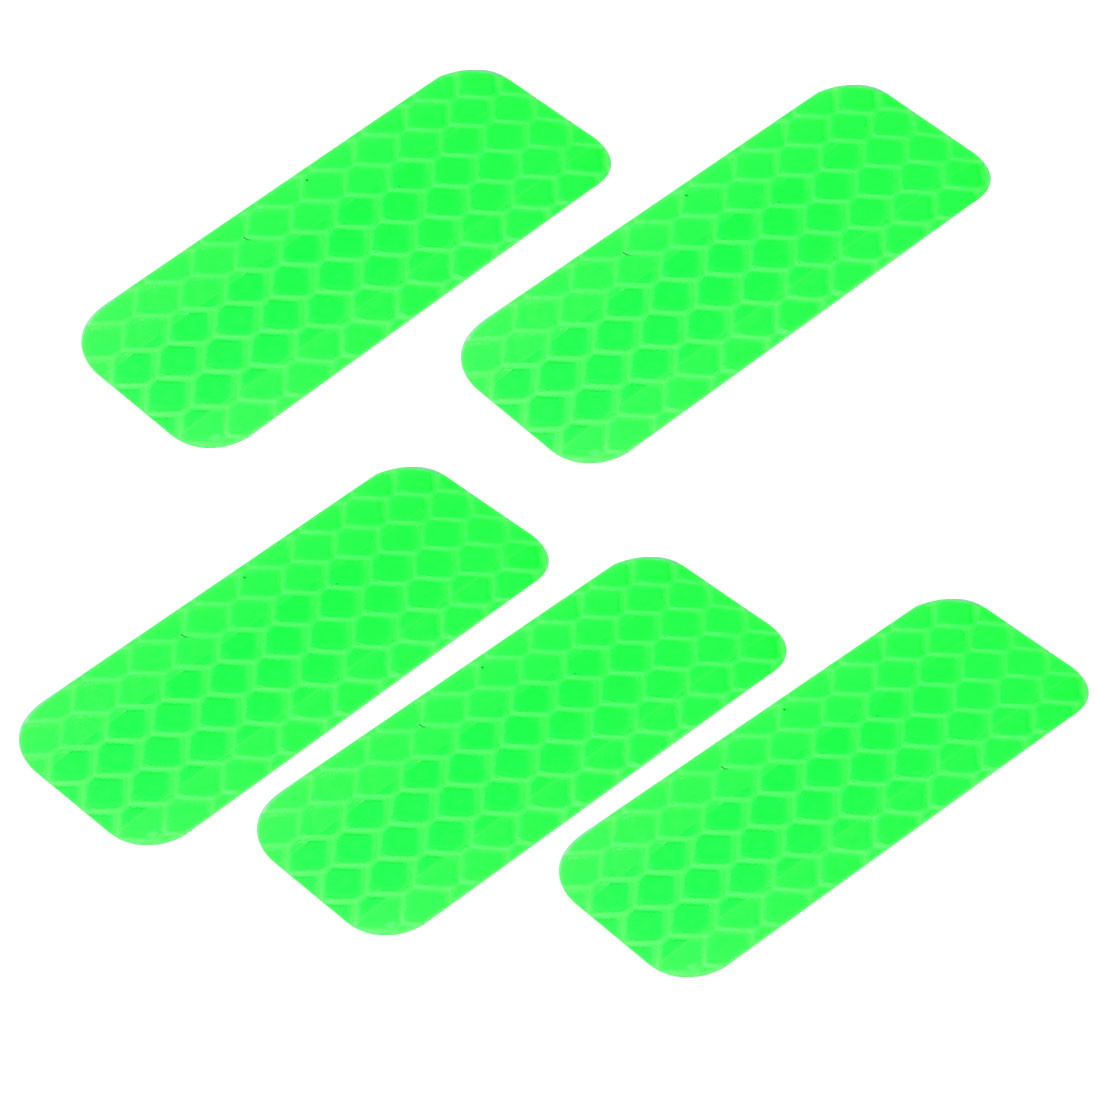 5pcs Honeycomb Reflective Warning Tape Film Sticker Green 20mm Width 50mm Length